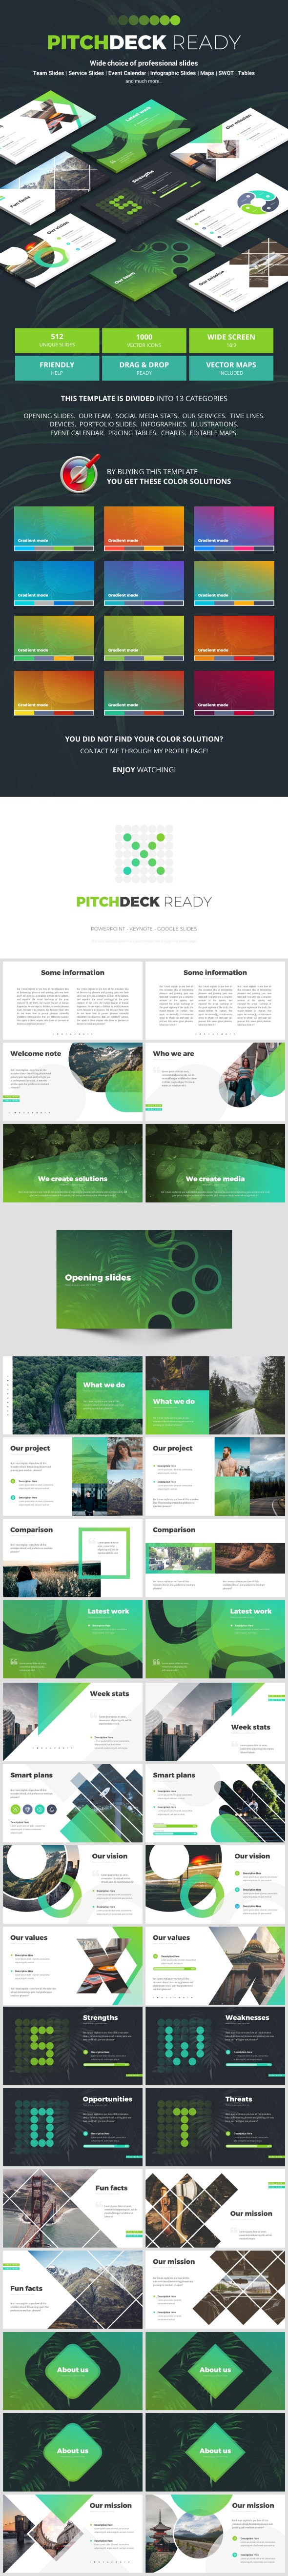 Pitch Deck Ready - Pitch Deck PowerPoint Templates